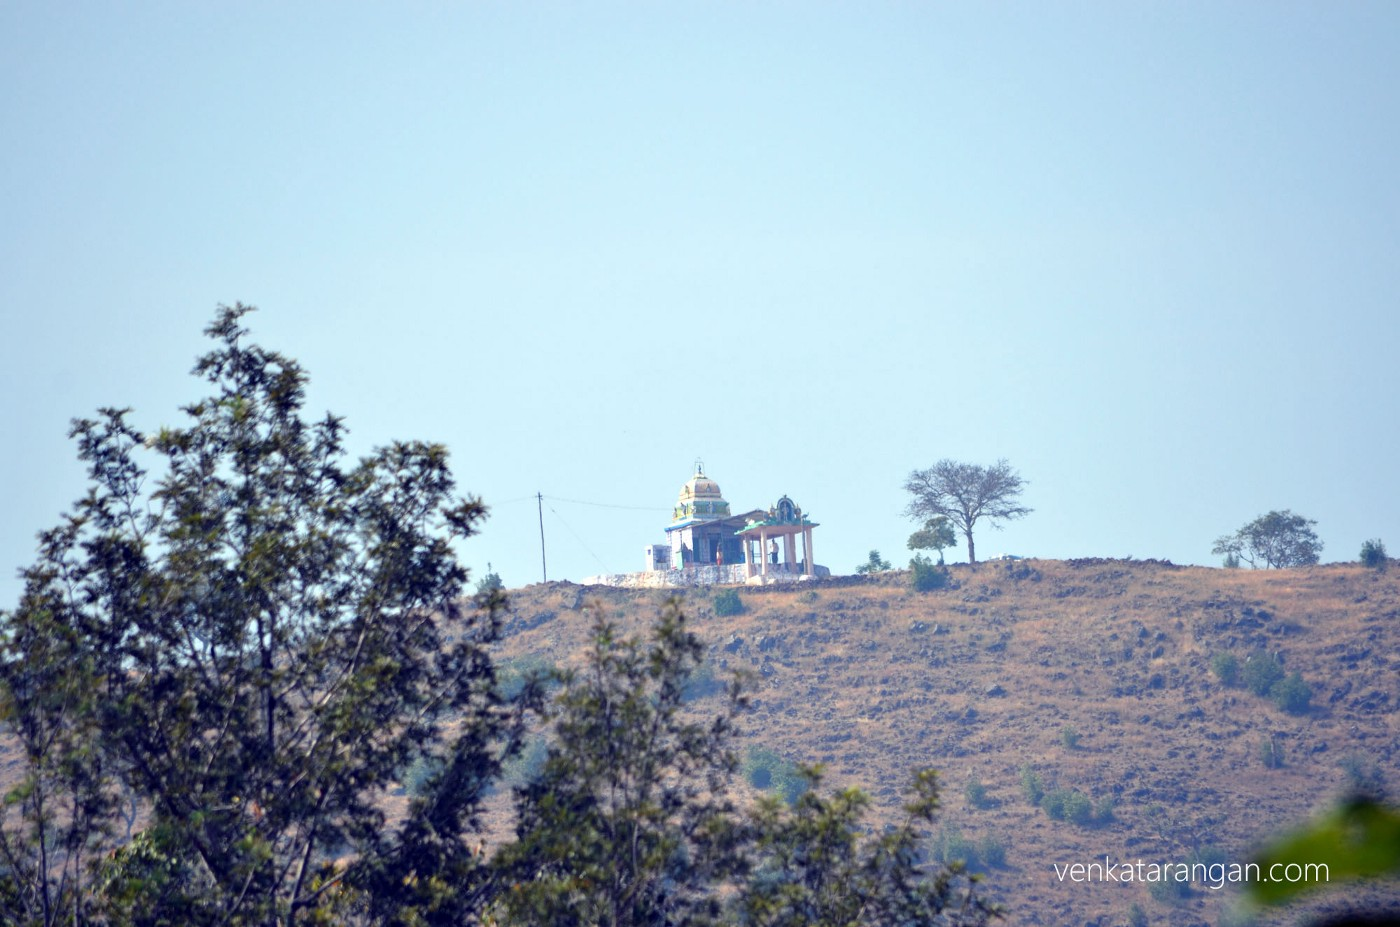 Lord Ganesa's temple over a hilltop